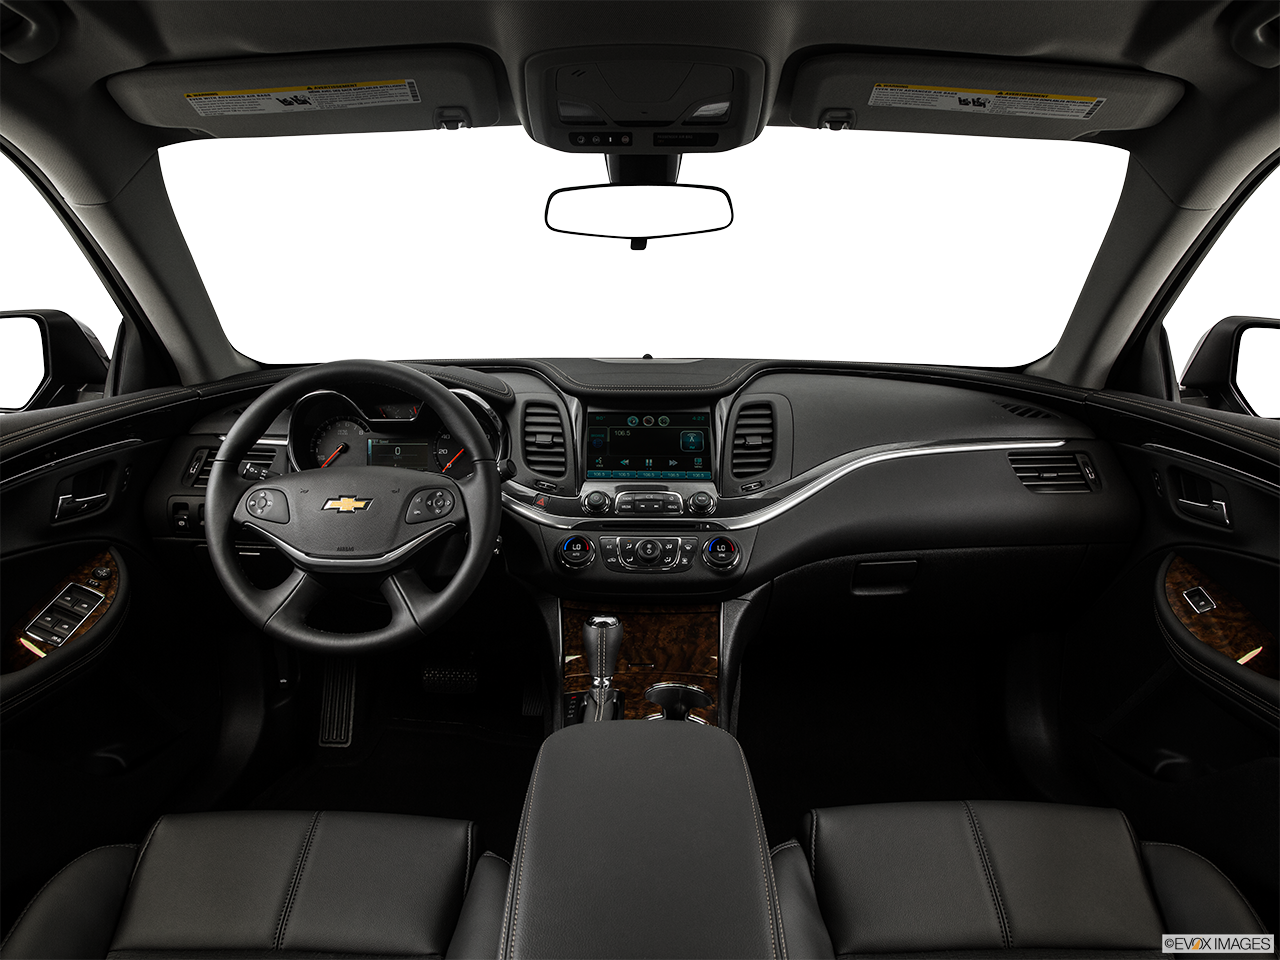 2015 chevy impala interior. interior view of 2015 chevrolet impala in carson chevy l